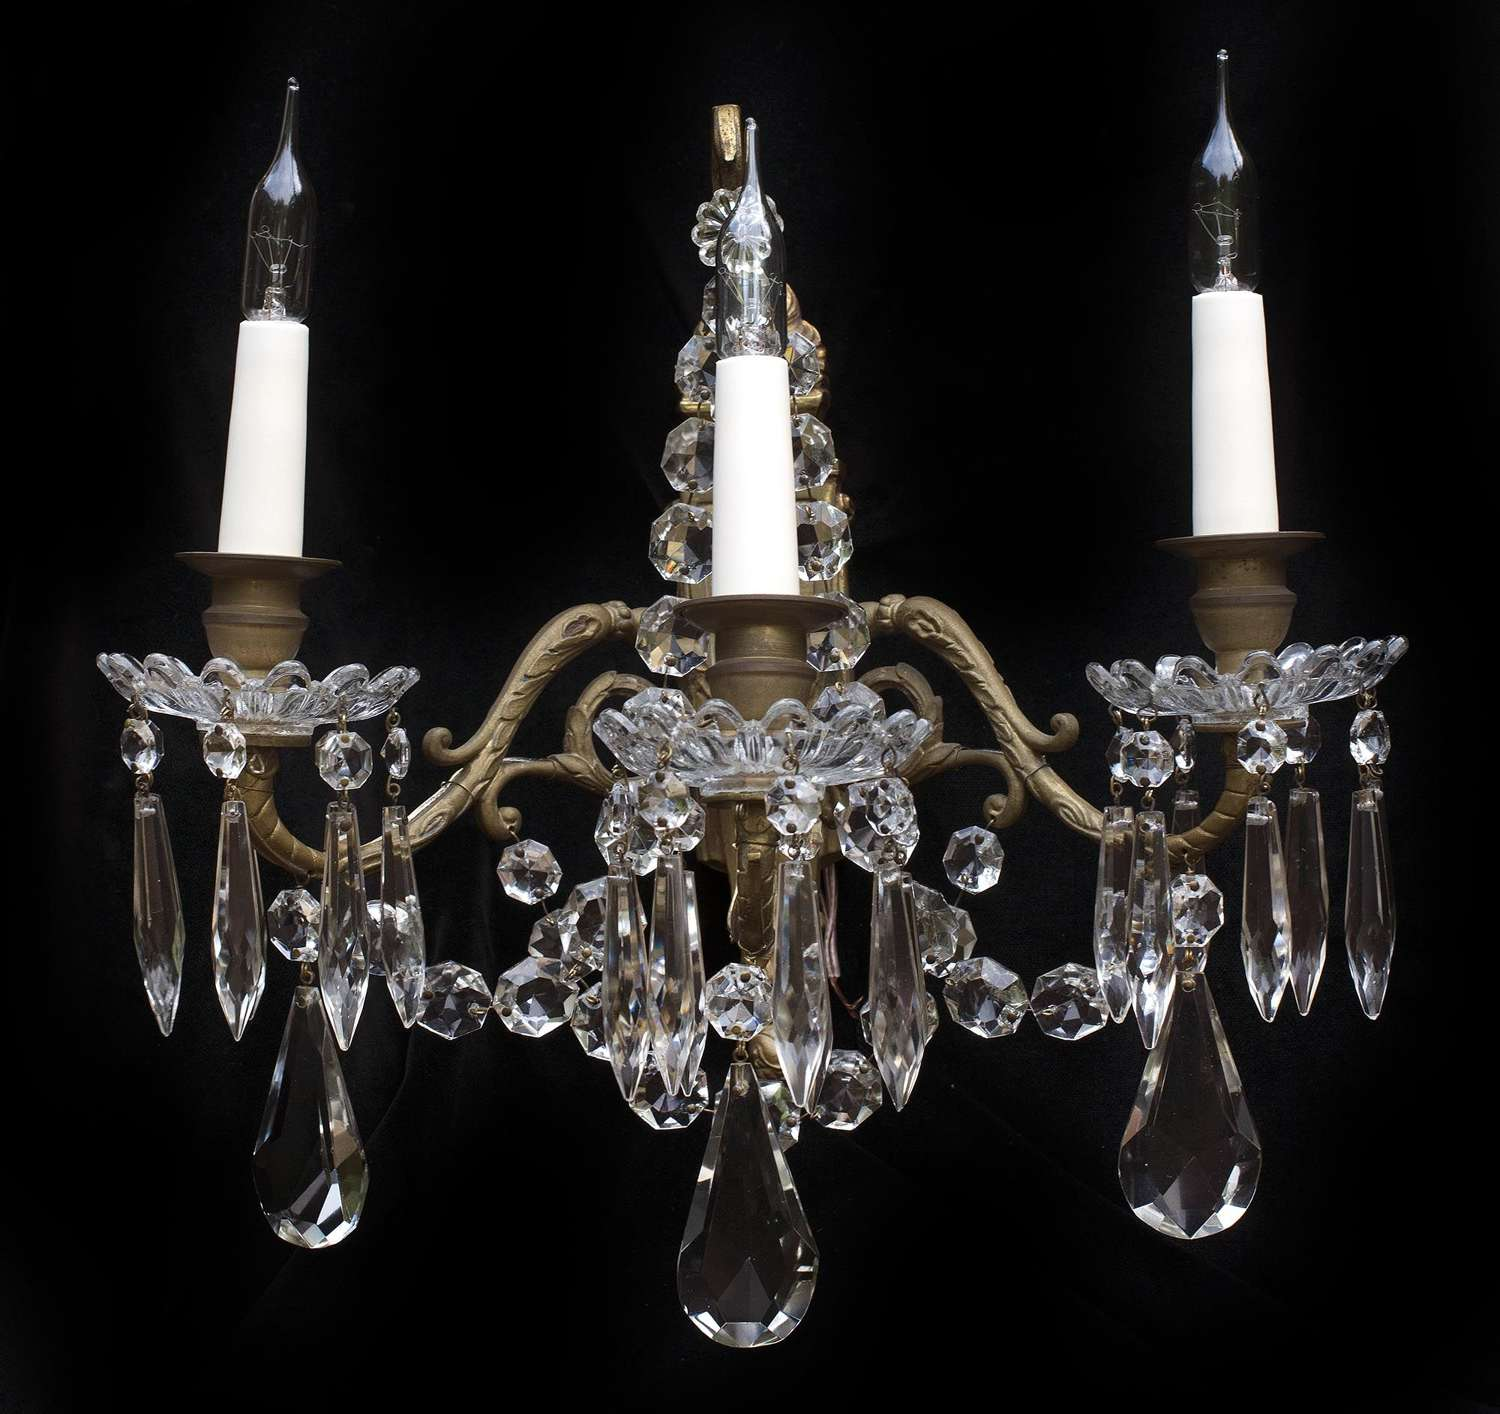 Pair of 3 light French antique wall lights with crystal drops